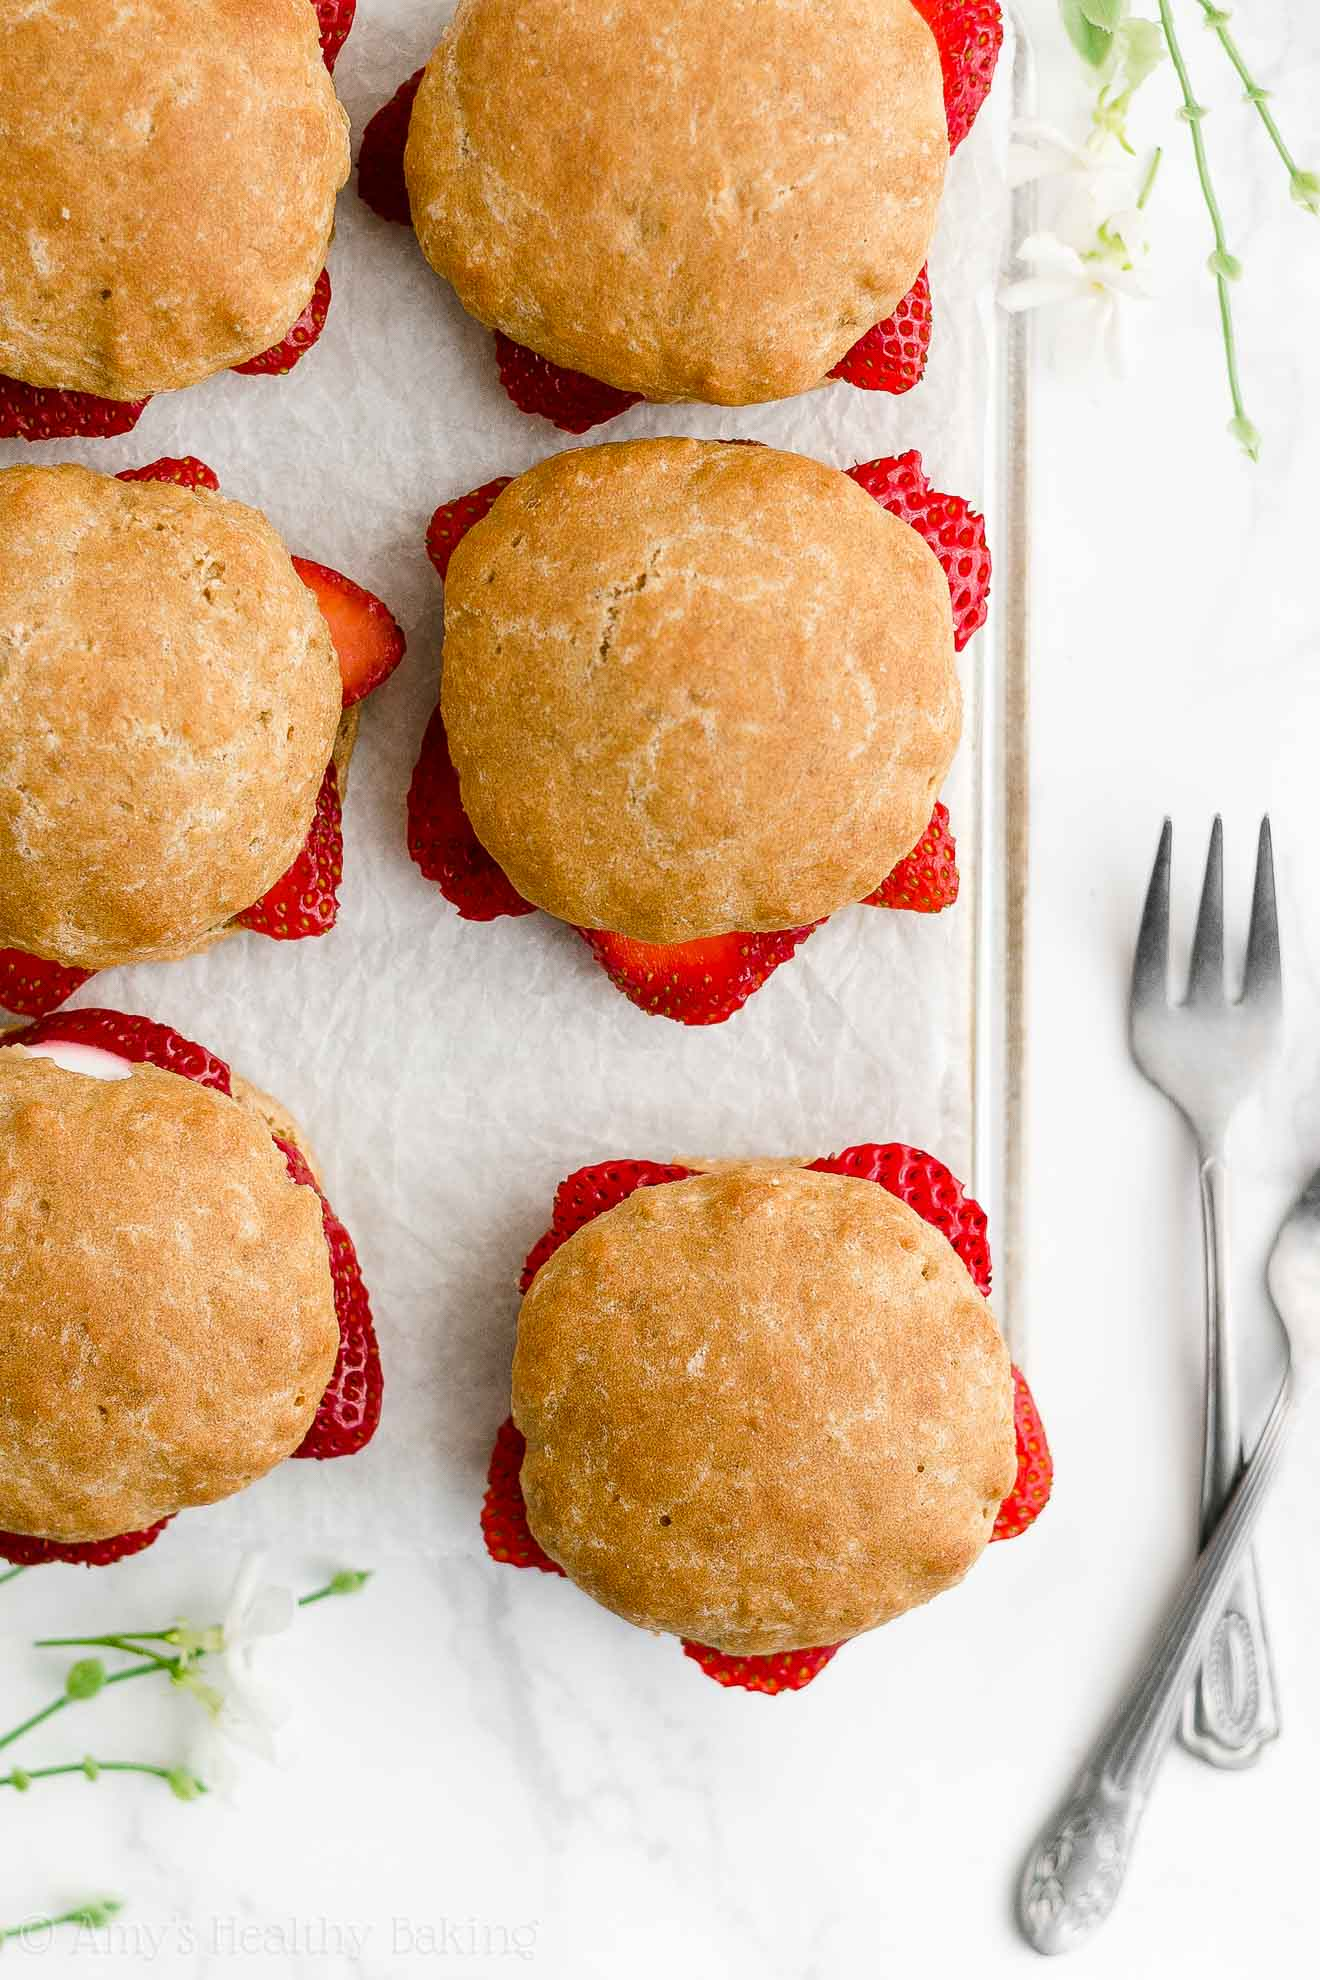 ULTIMATE Best Ever Easy Healthy Whole Wheat Egg Free Strawberry Shortcakes